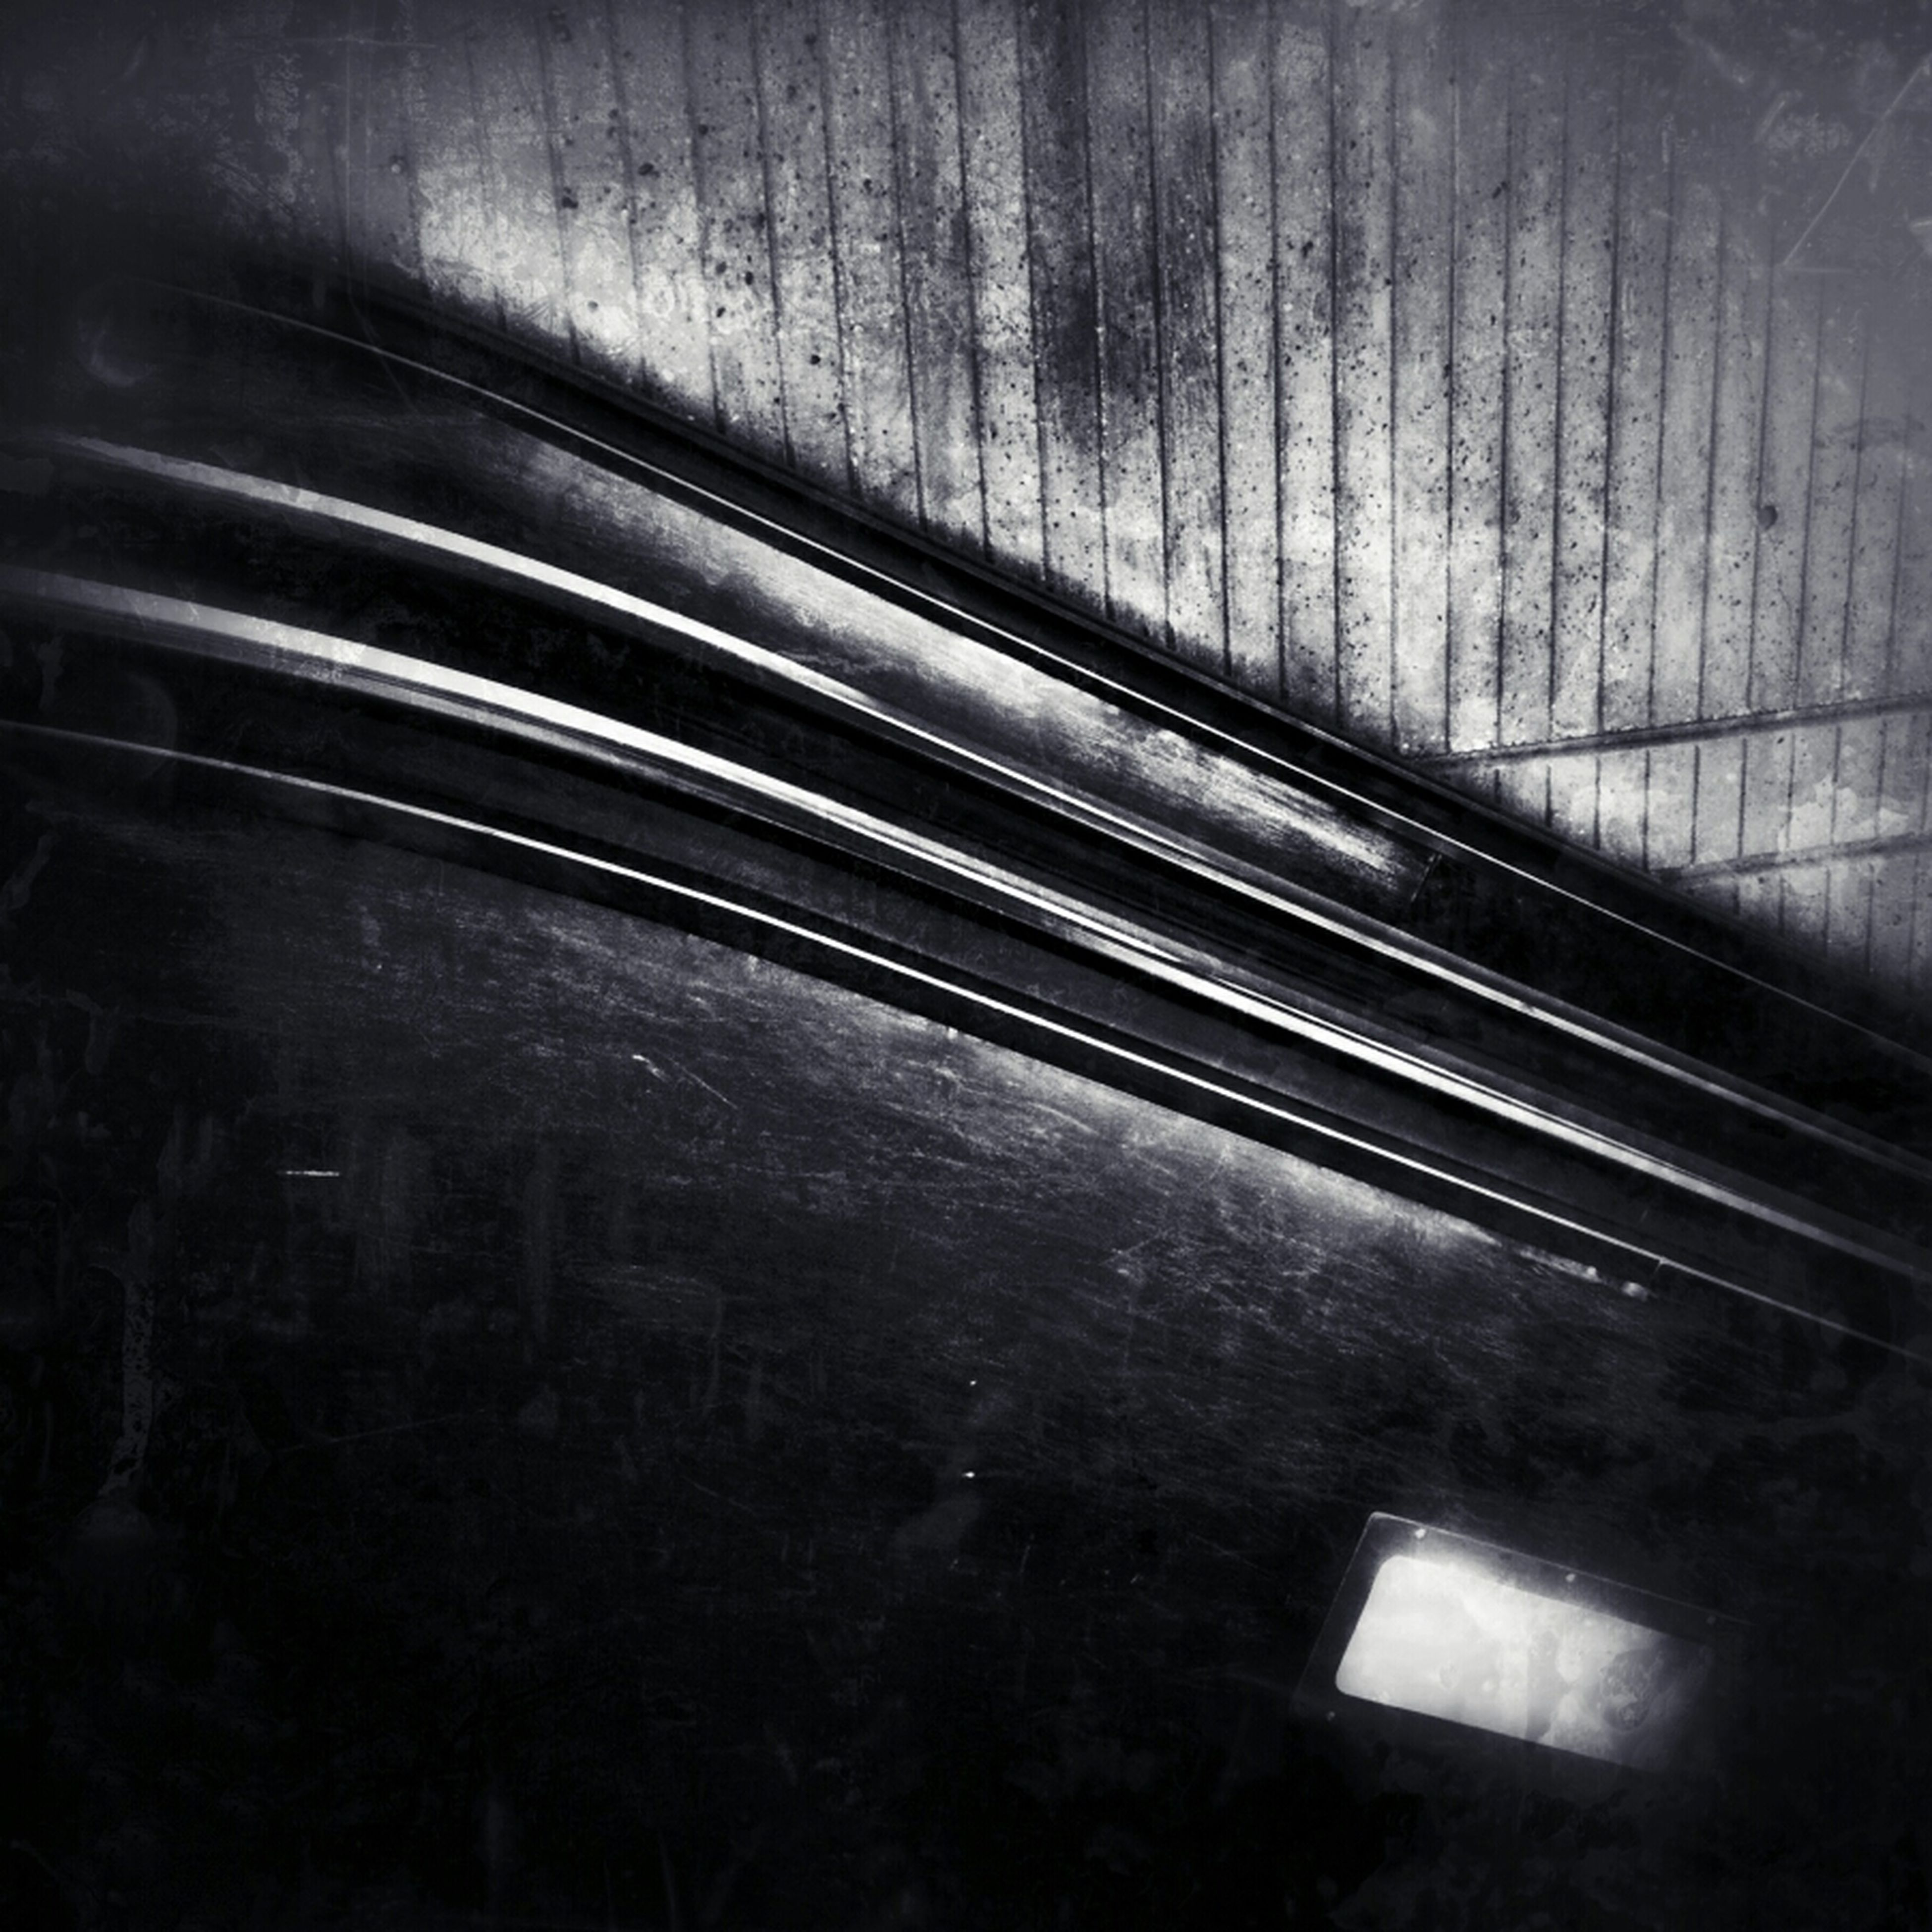 indoors, illuminated, transportation, night, wall - building feature, railroad track, subway station, subway, rail transportation, high angle view, light - natural phenomenon, railroad station, underground, no people, blurred motion, tunnel, absence, motion, the way forward, empty